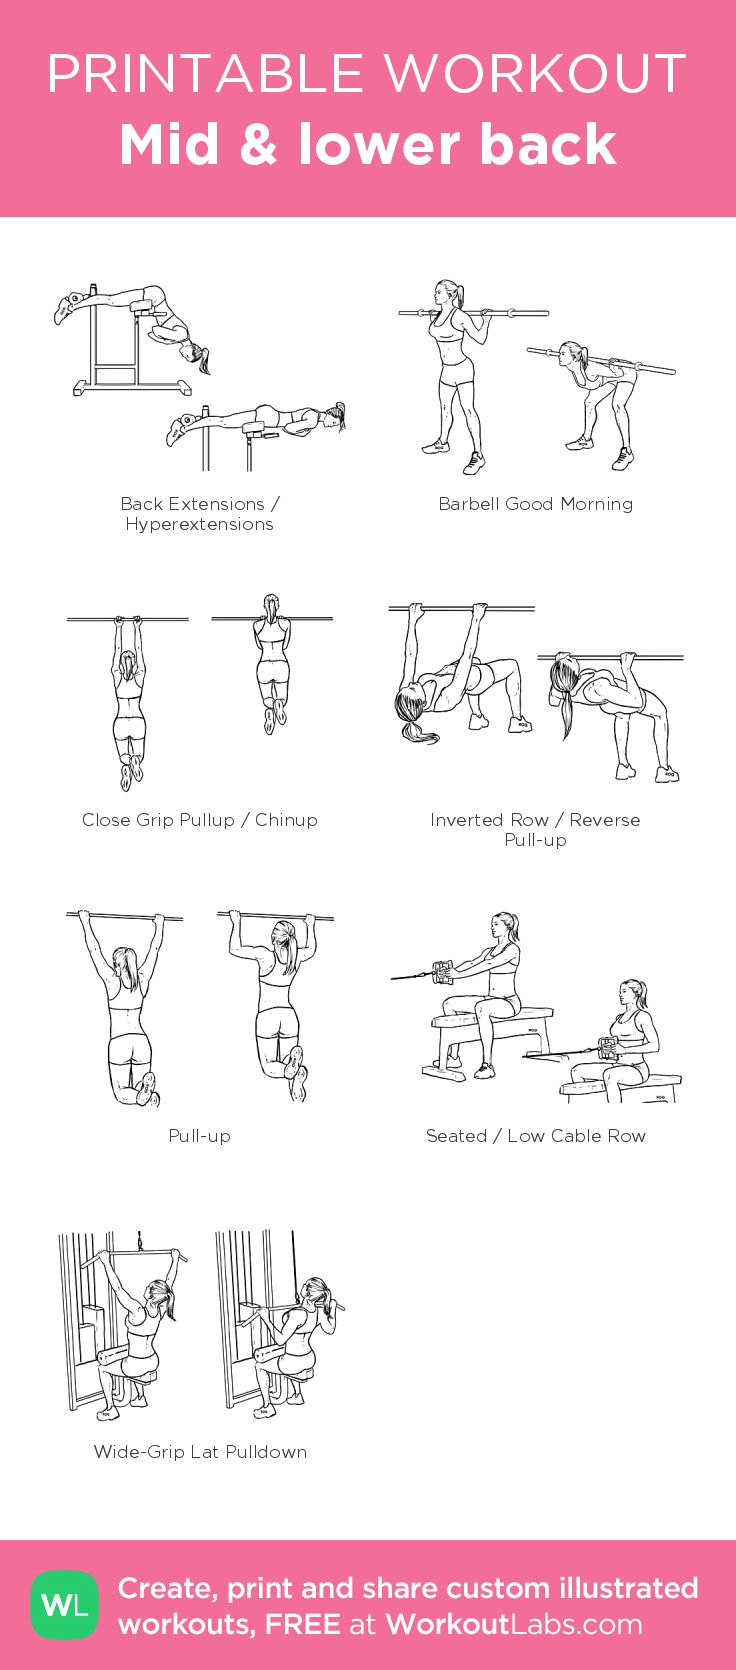 Chest Workouts At Source Biceps Workout Home Without Equipment Pdf Viewyoga Co